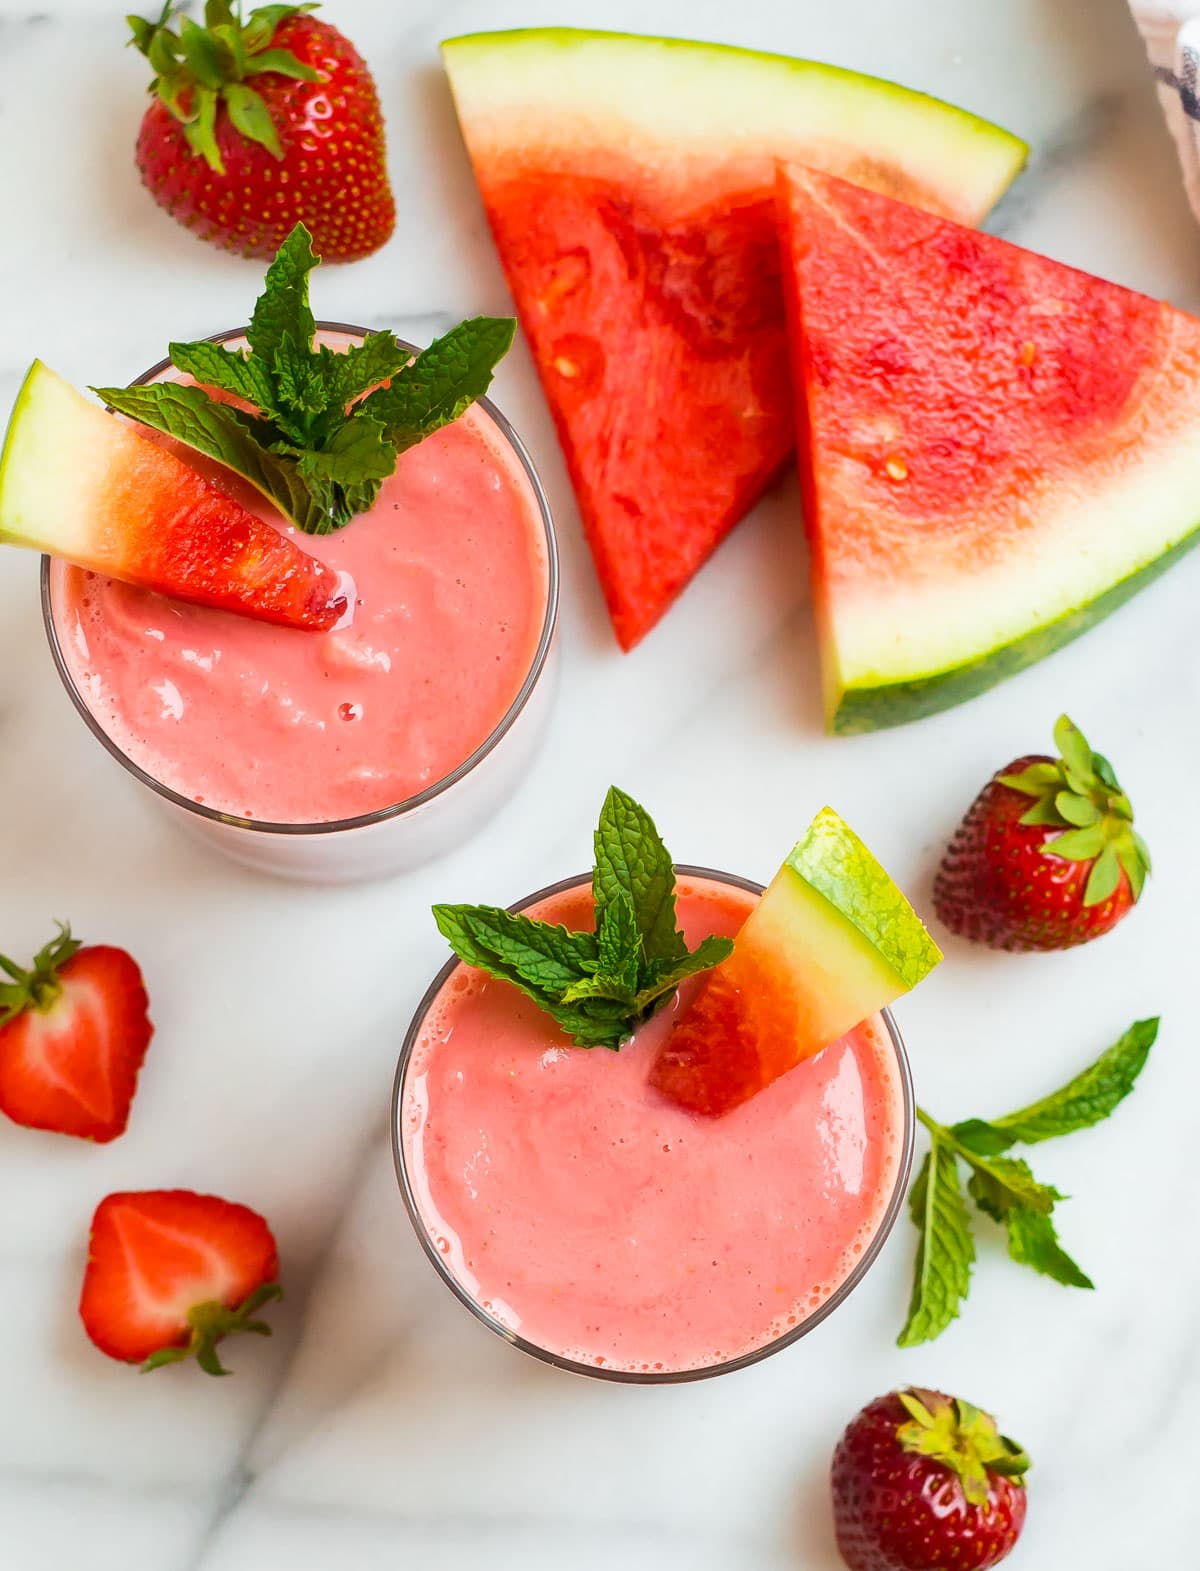 Two watermelon smoothies in glasses next to strawberries and watermelon slices